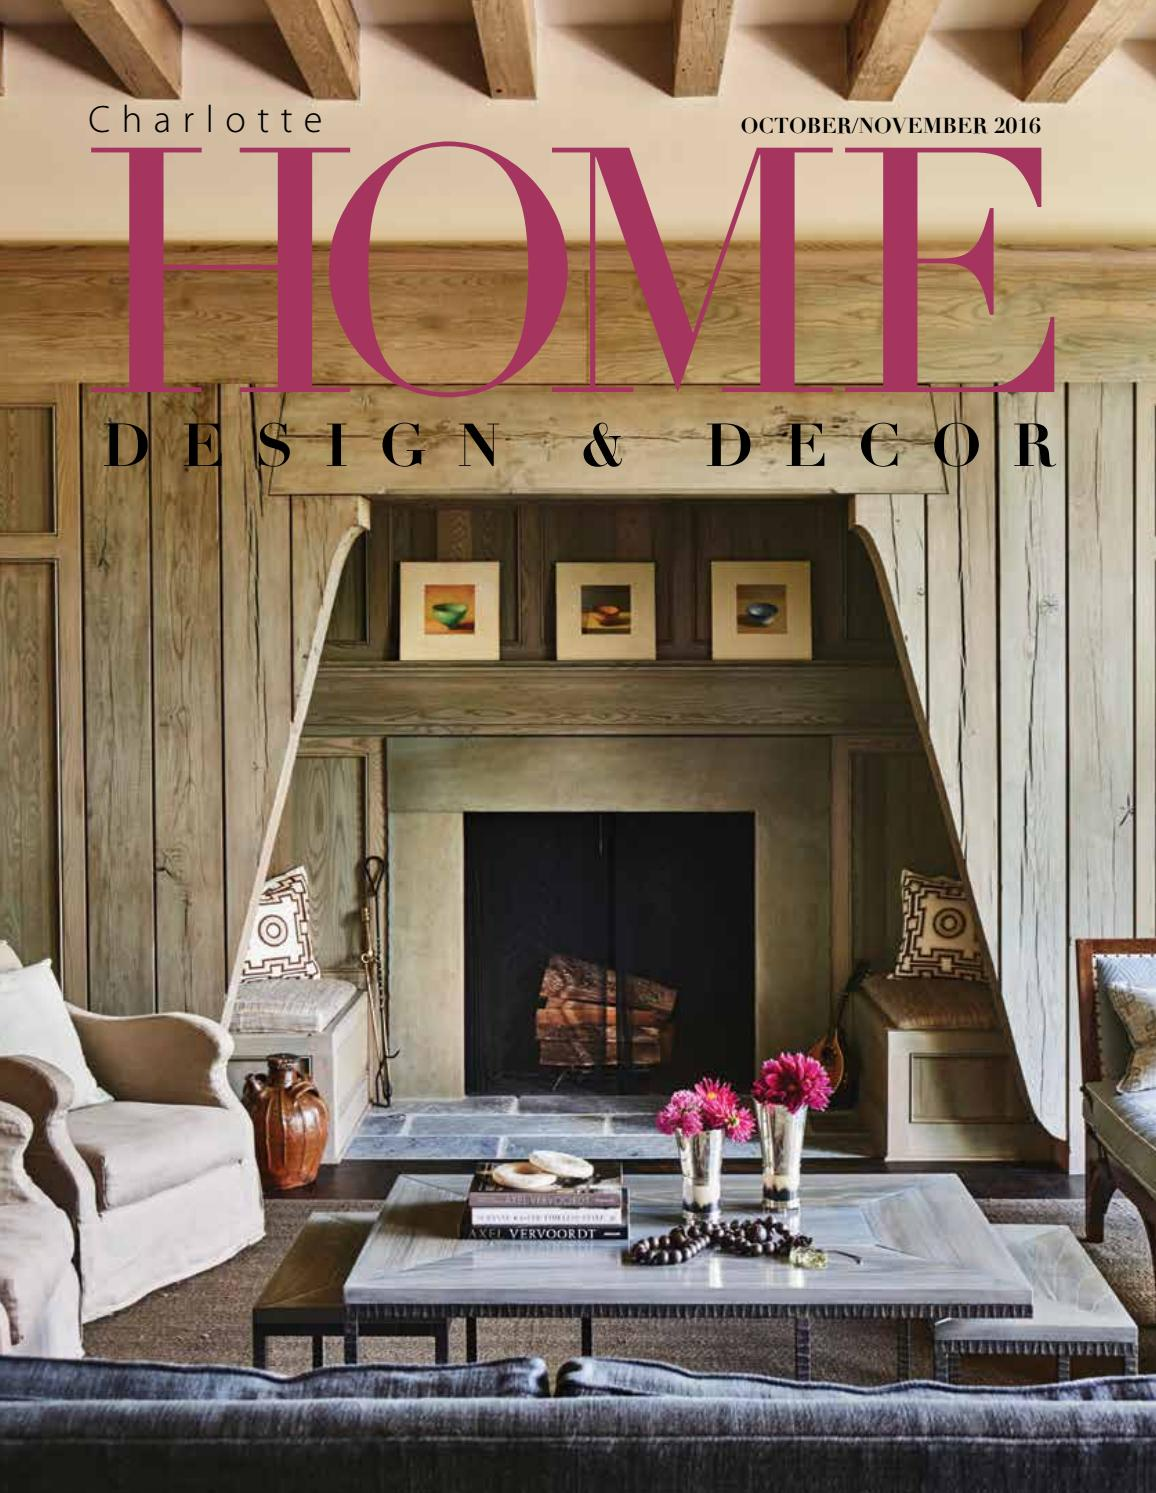 Home Design Decor Magazine Clthdd10 16